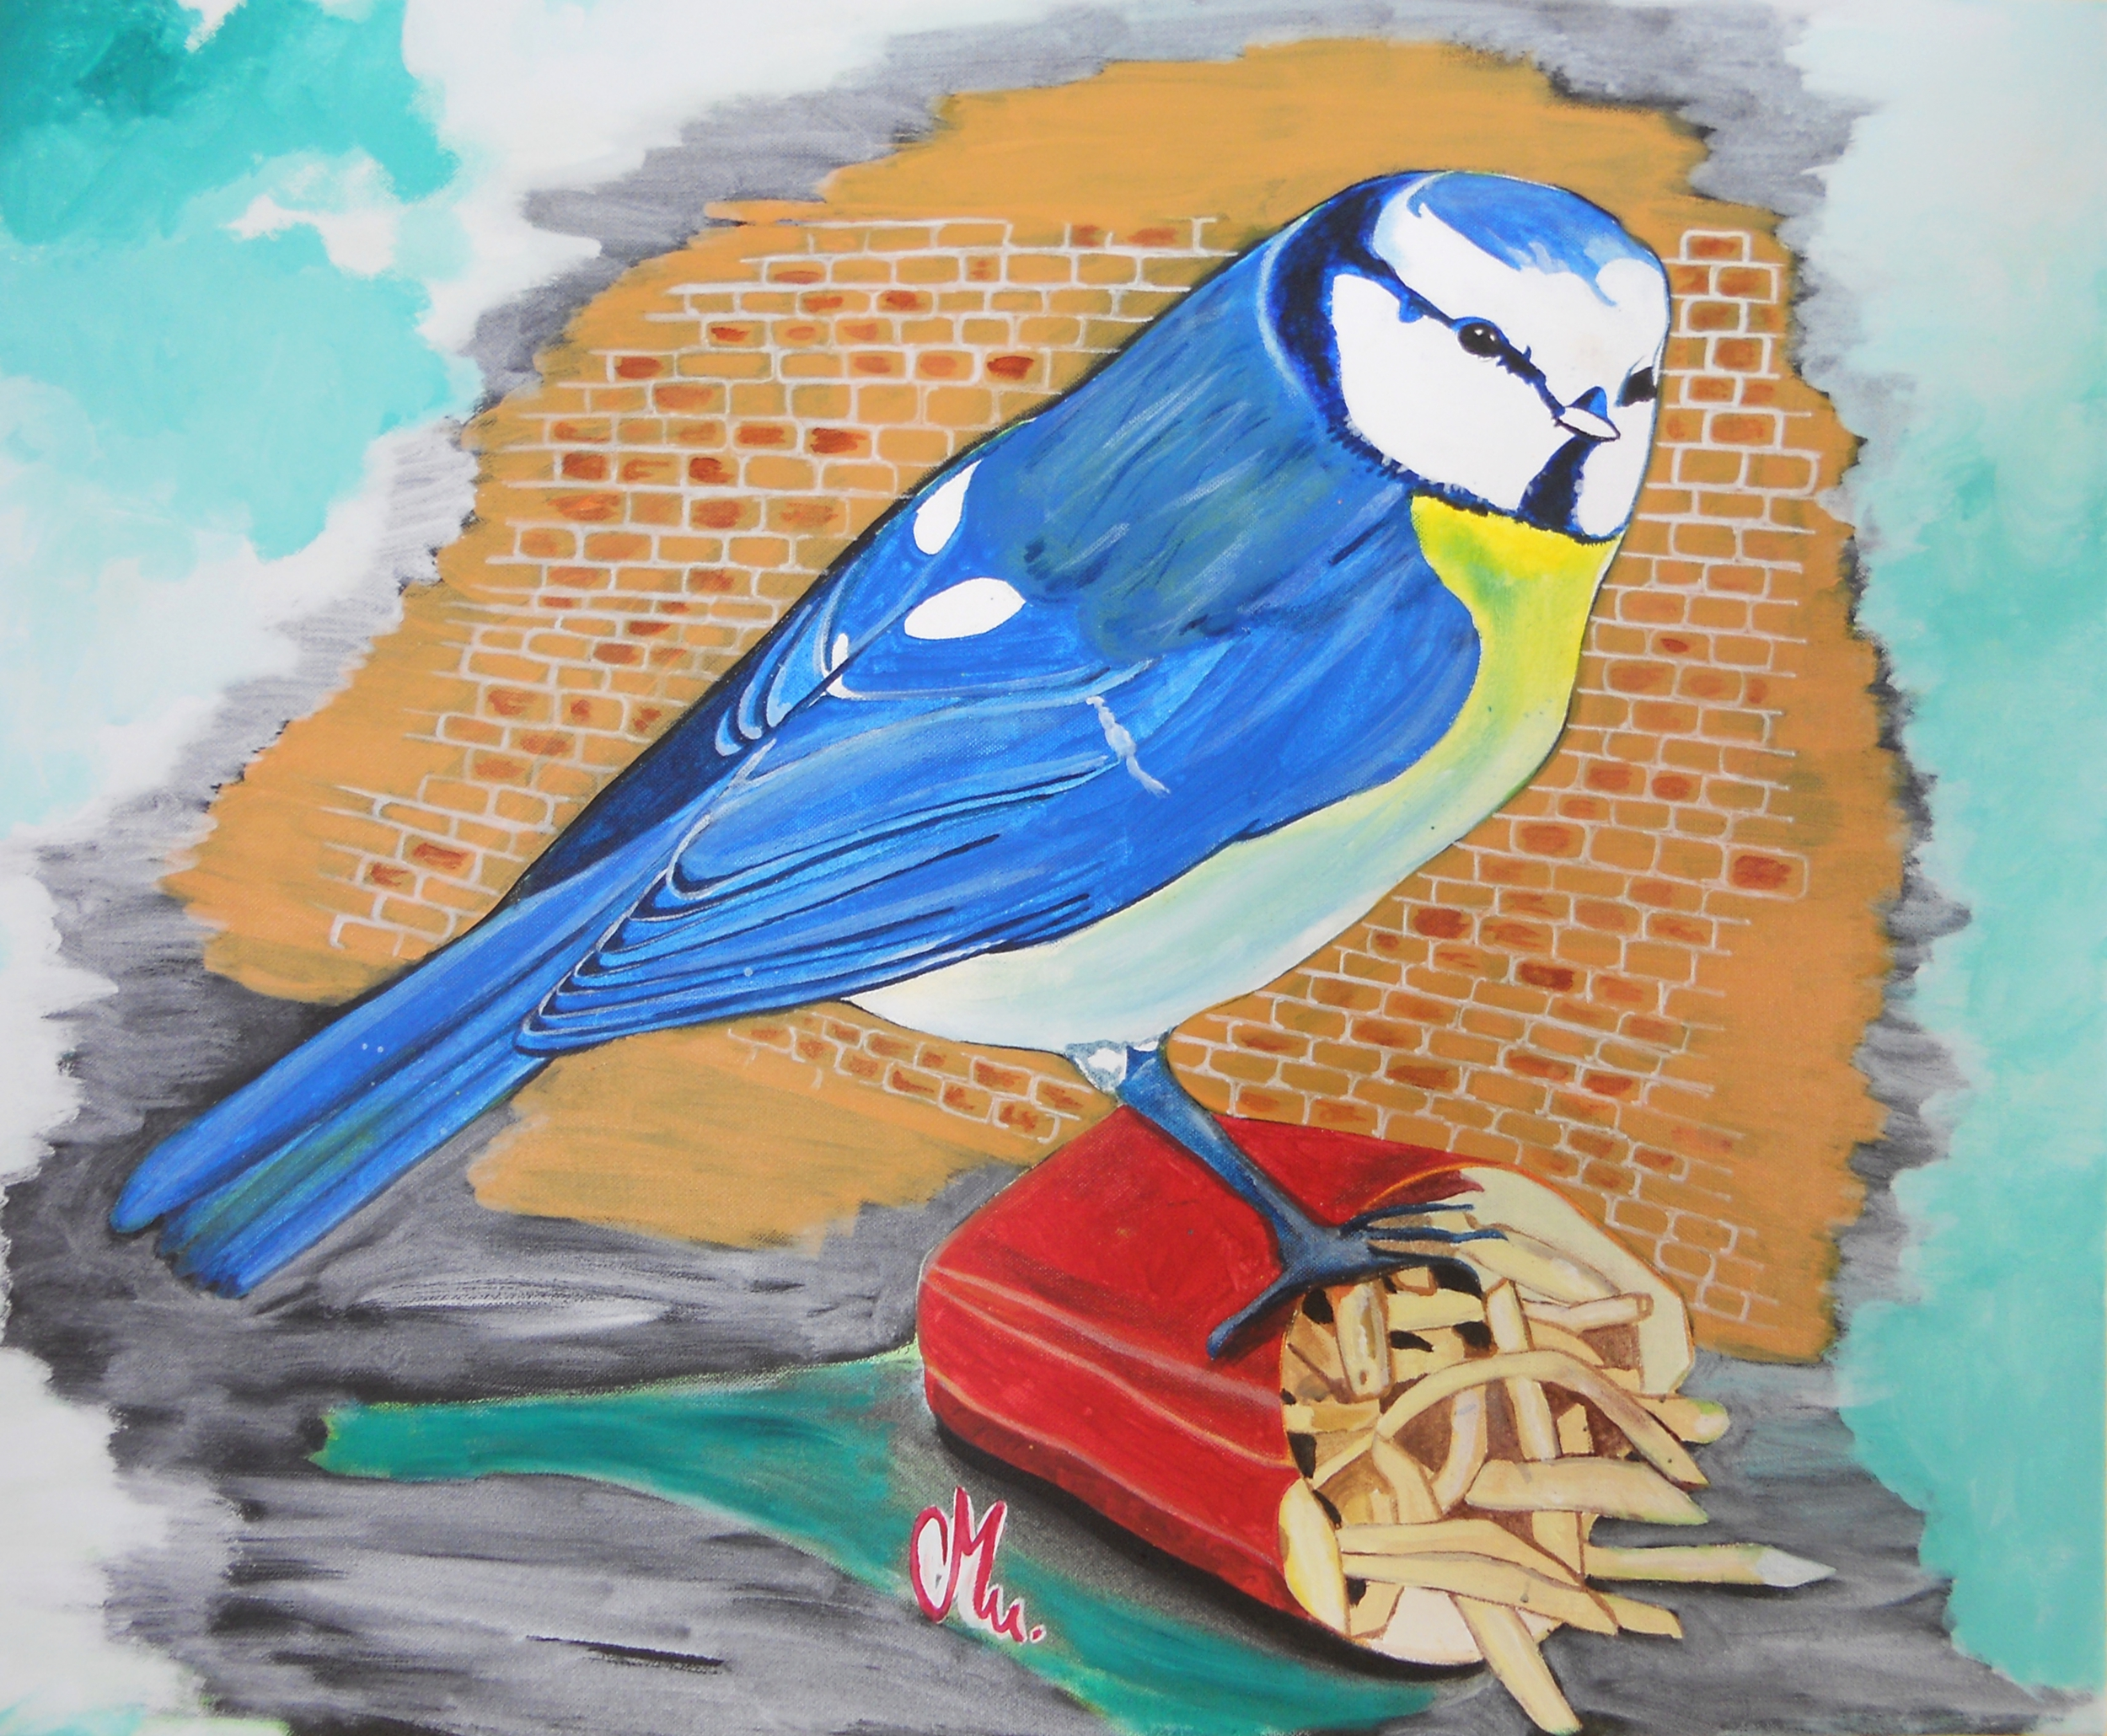 Tableau art contemporain nature l 39 oiseau bleu art for Tableau art contemporain